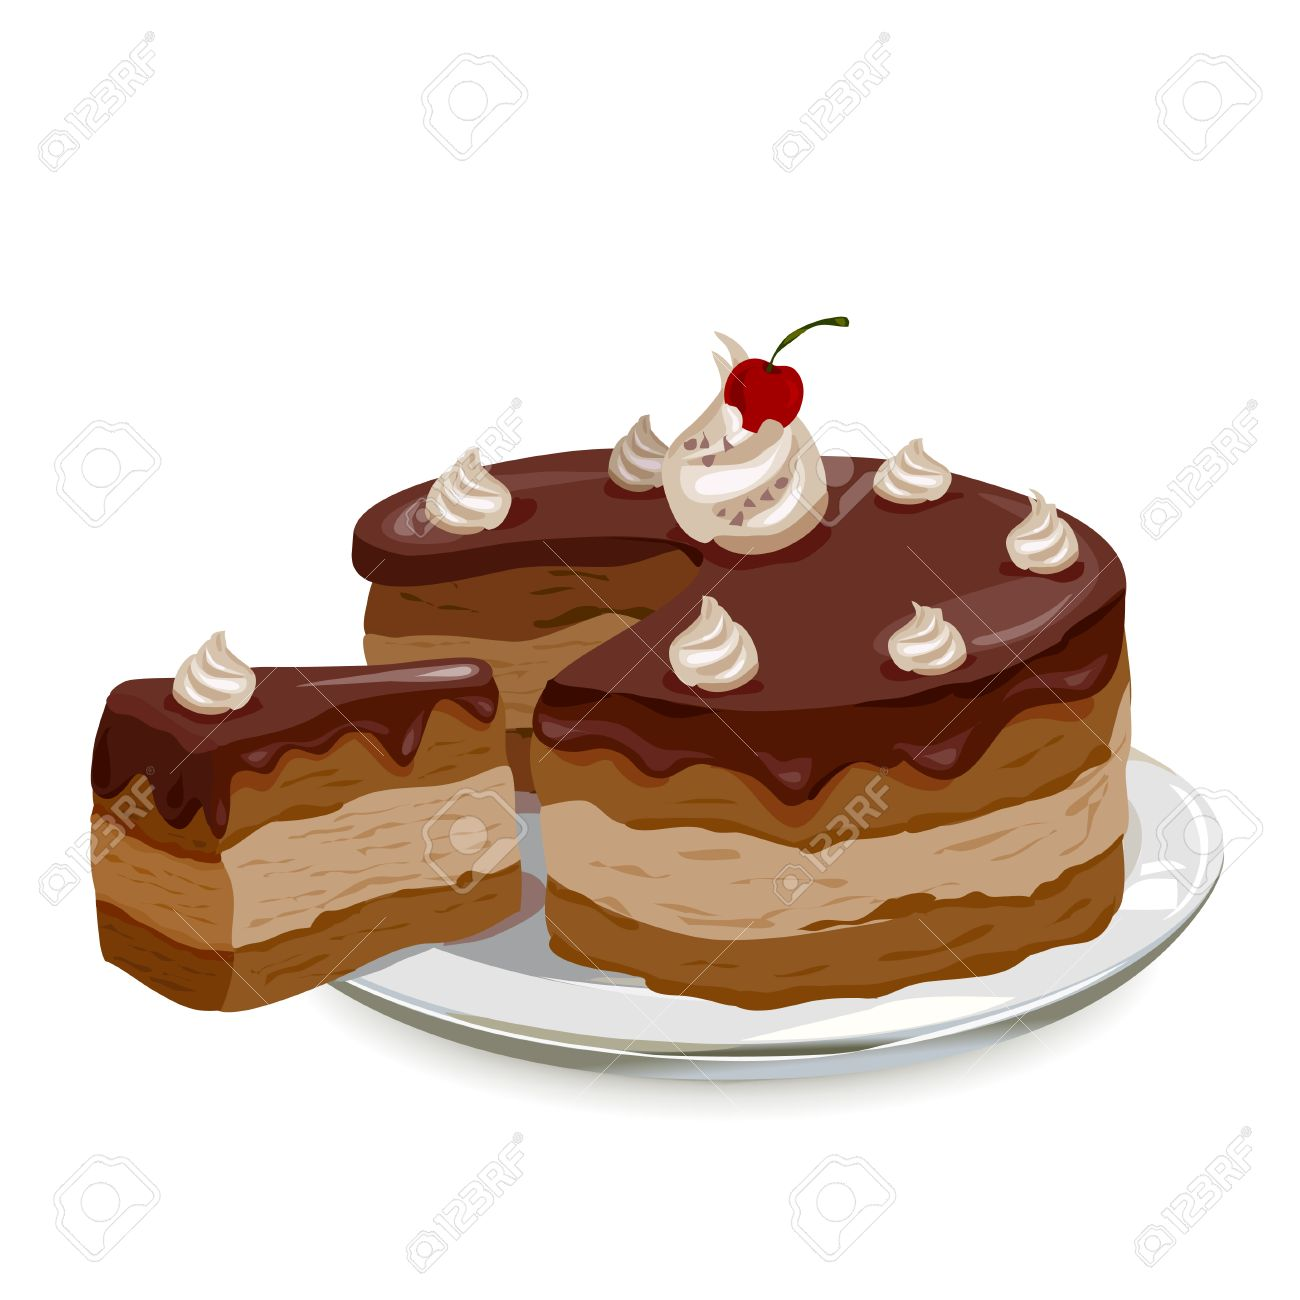 chocolate cake with cherries on a plate. Standard-Bild - 29777653